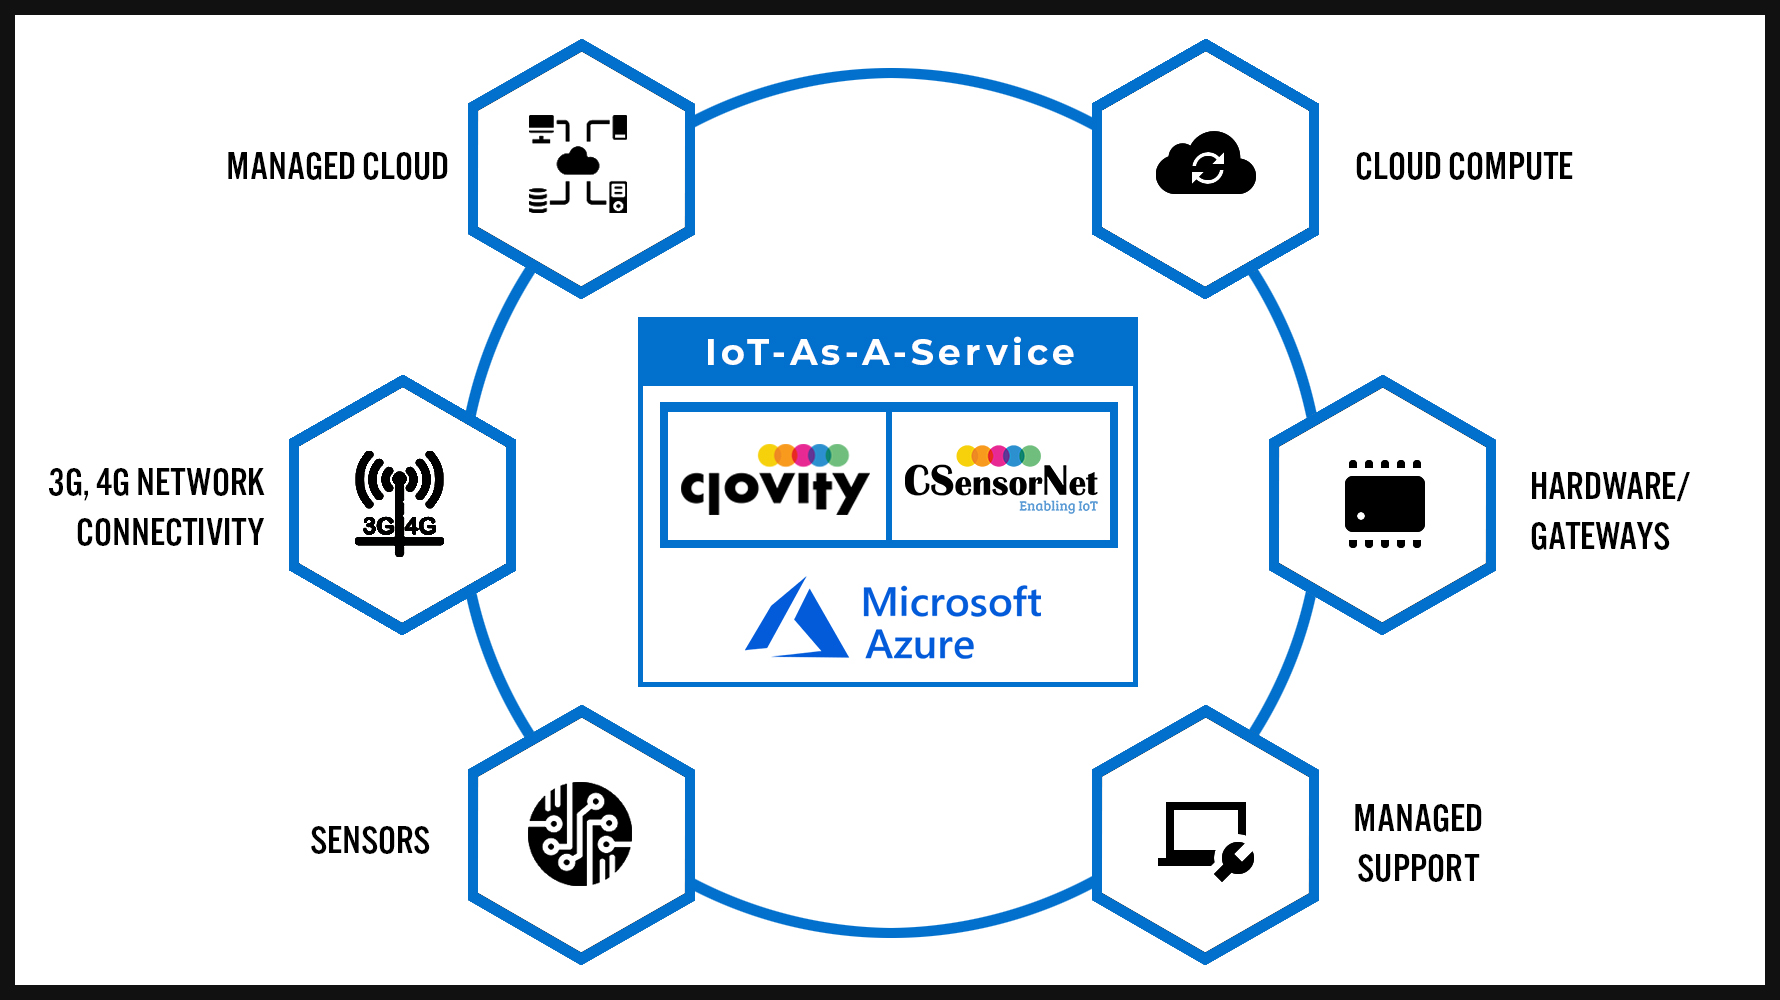 Clovity Presents IoT-As-A-Service Pricing & Vertical Industrial Hardware Bundle Solutions for the Next Release of Their CSensorNet IoT Platform